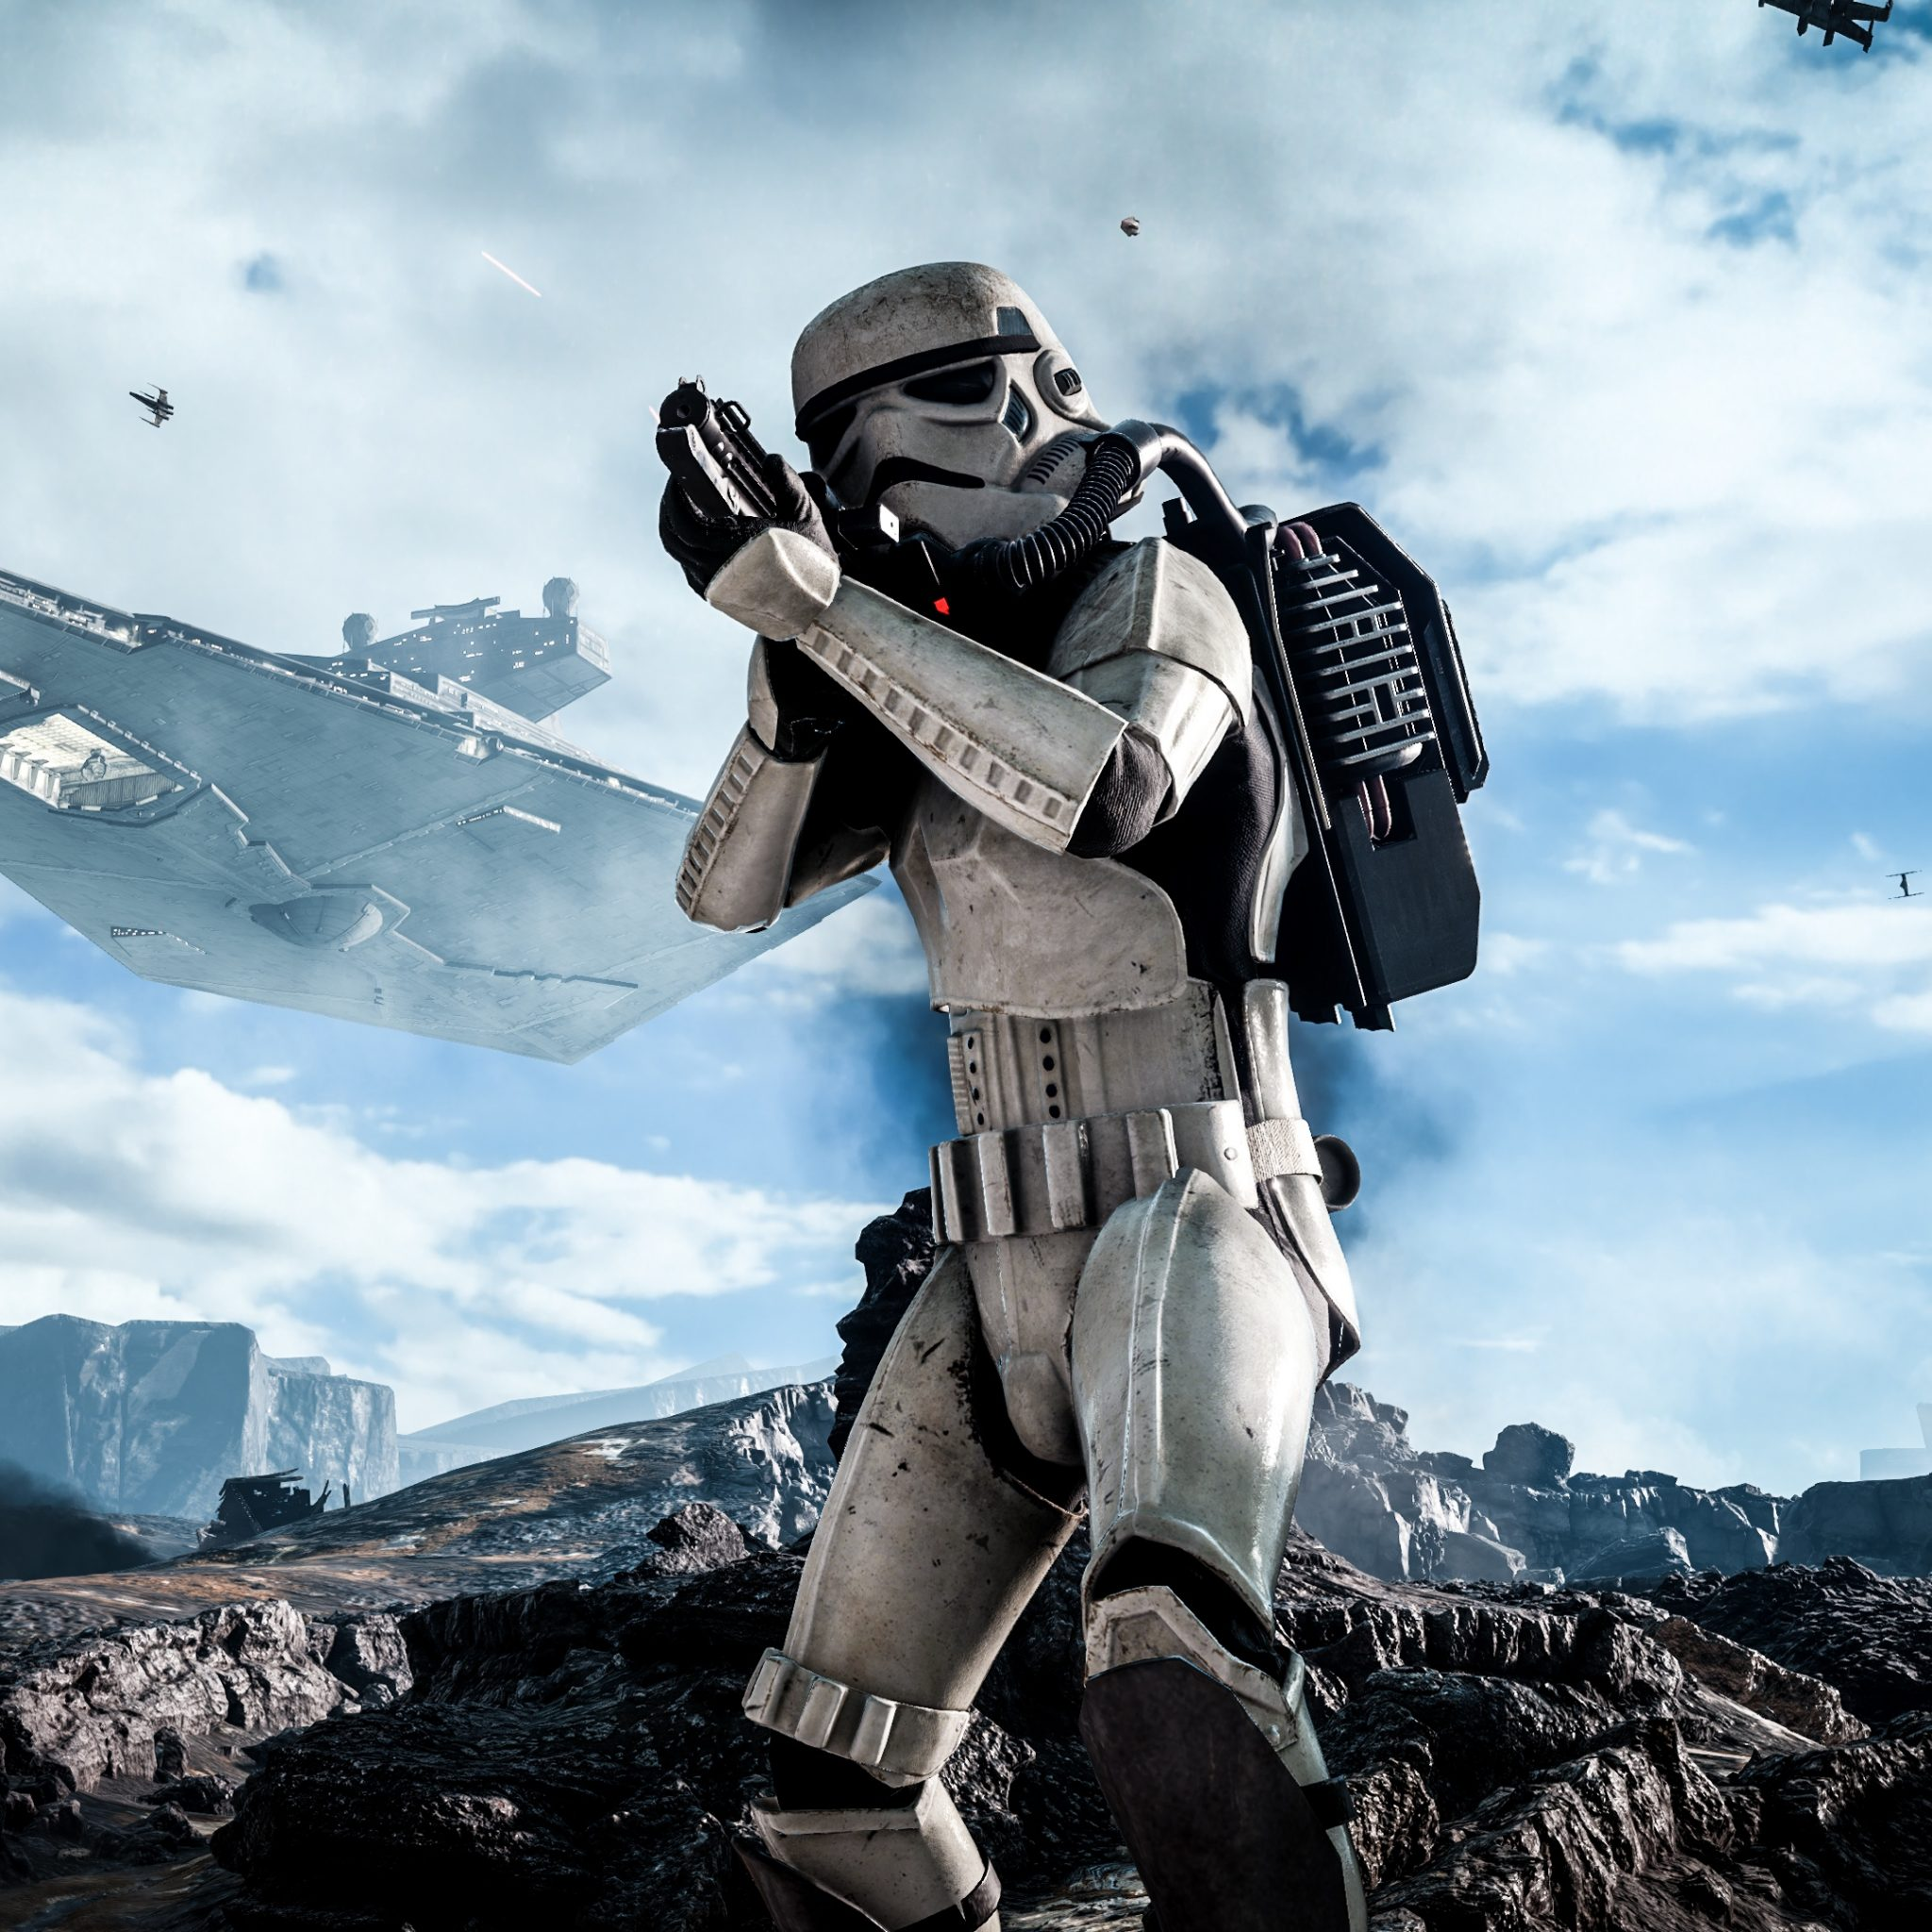 Star Wars Battlefront Electronic Arts Uhd 4k Wallpaper